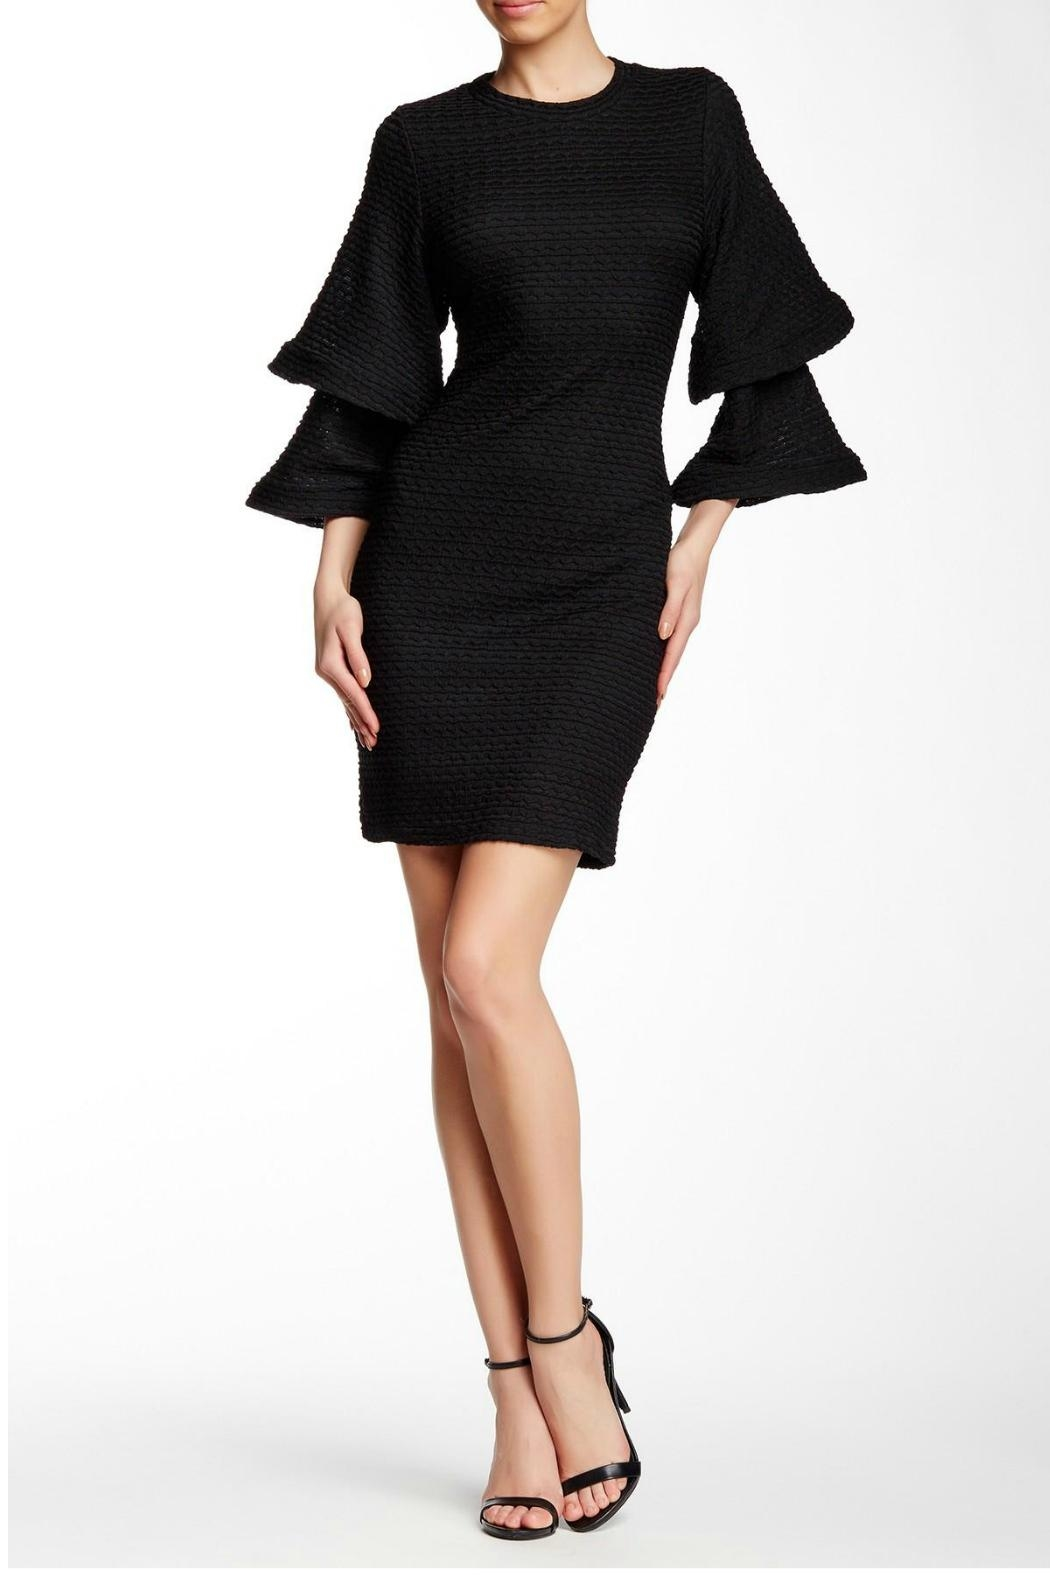 Gracia Crease Bell-Sleeved Dress - Main Image